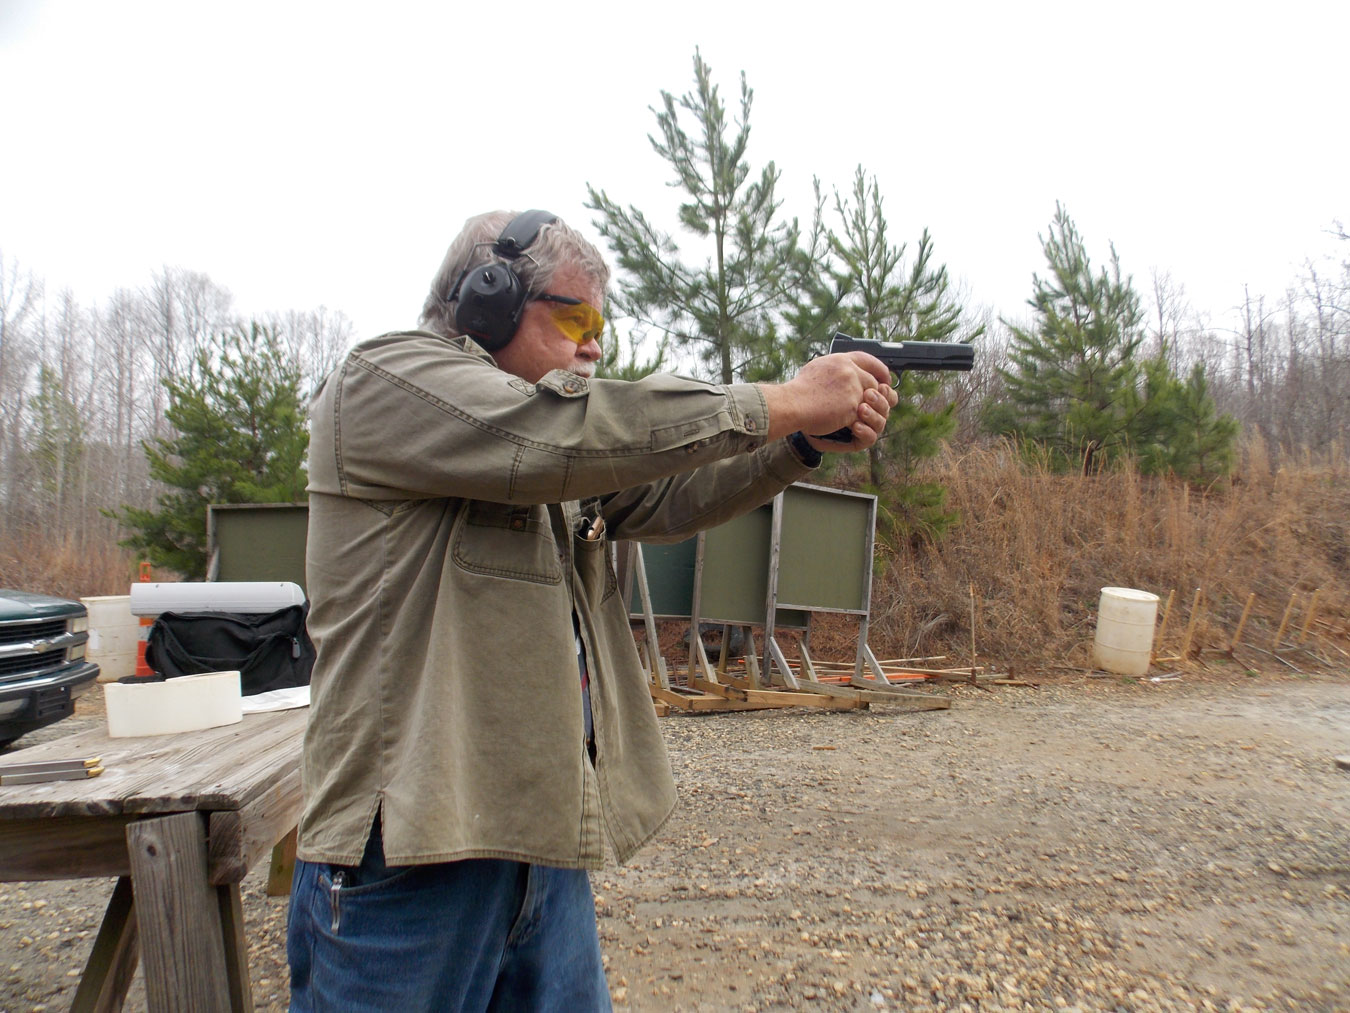 Bob Campbell shooting a Springfield TRP pistol with a two hand grip